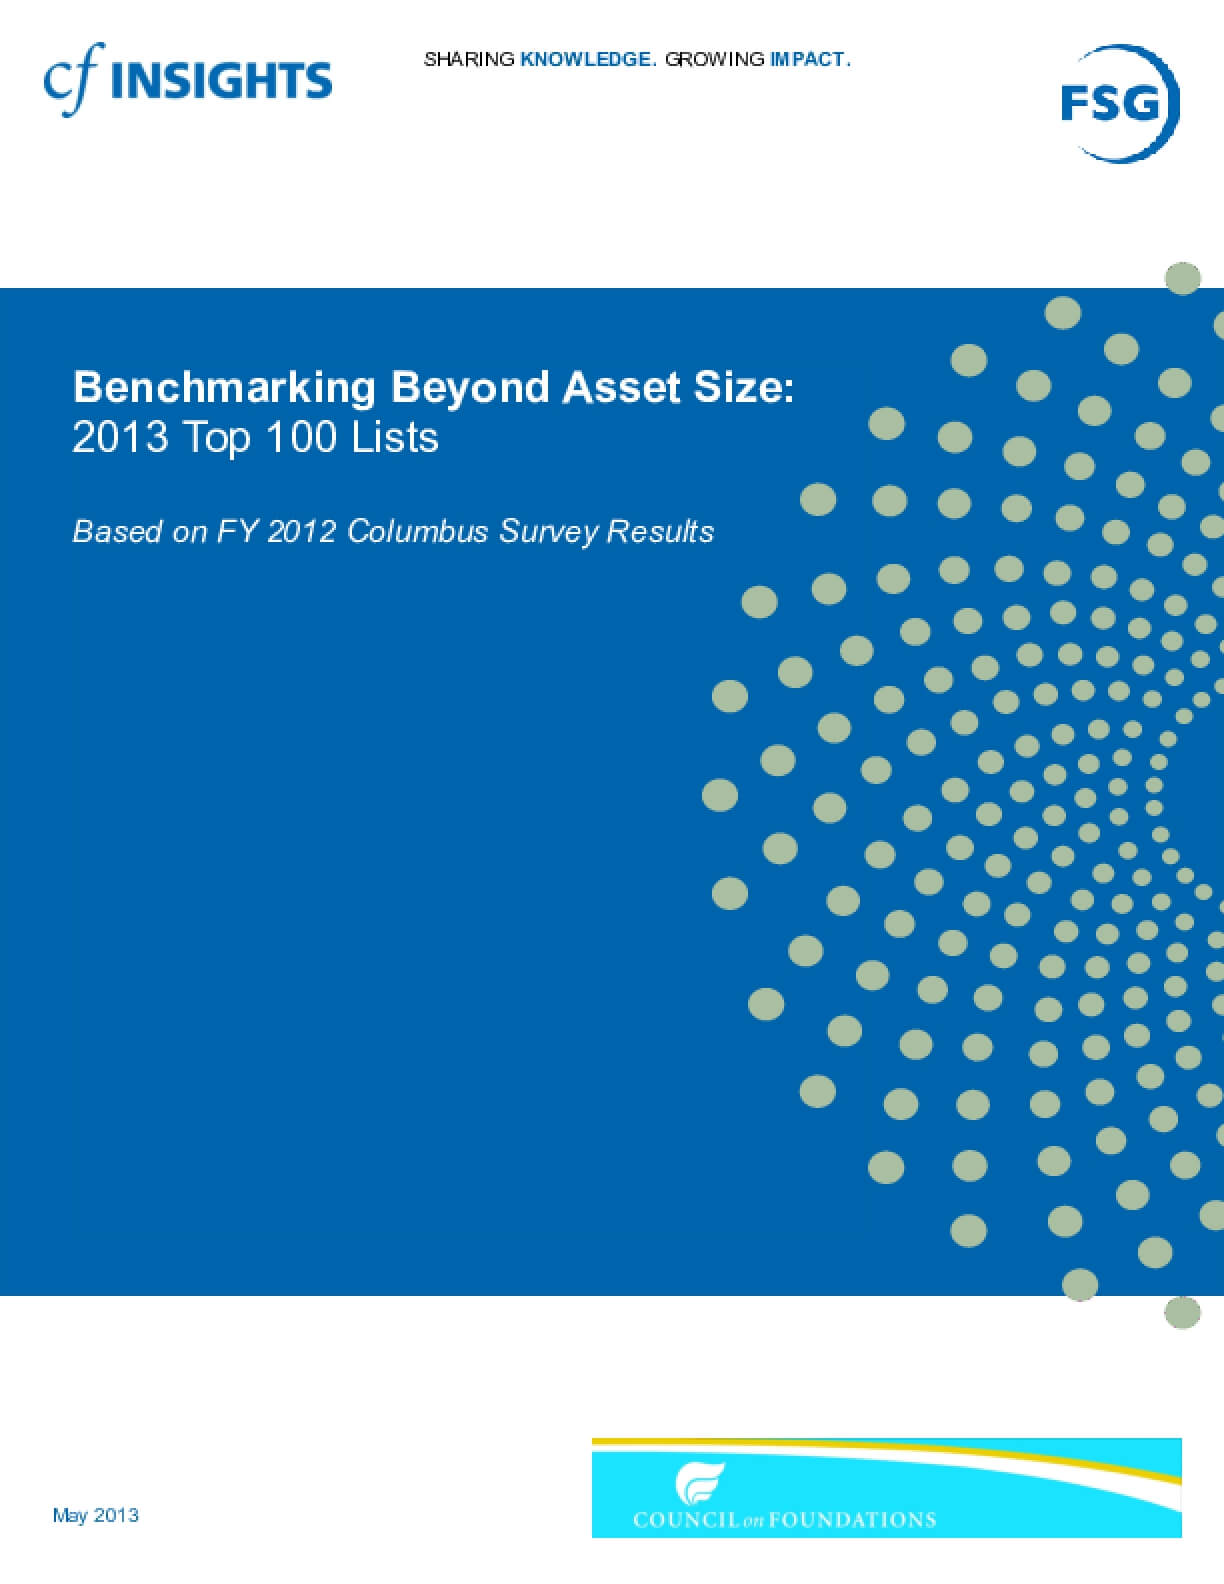 Benchmarking Beyond Asset Size Top 100 Lists - FY 2012